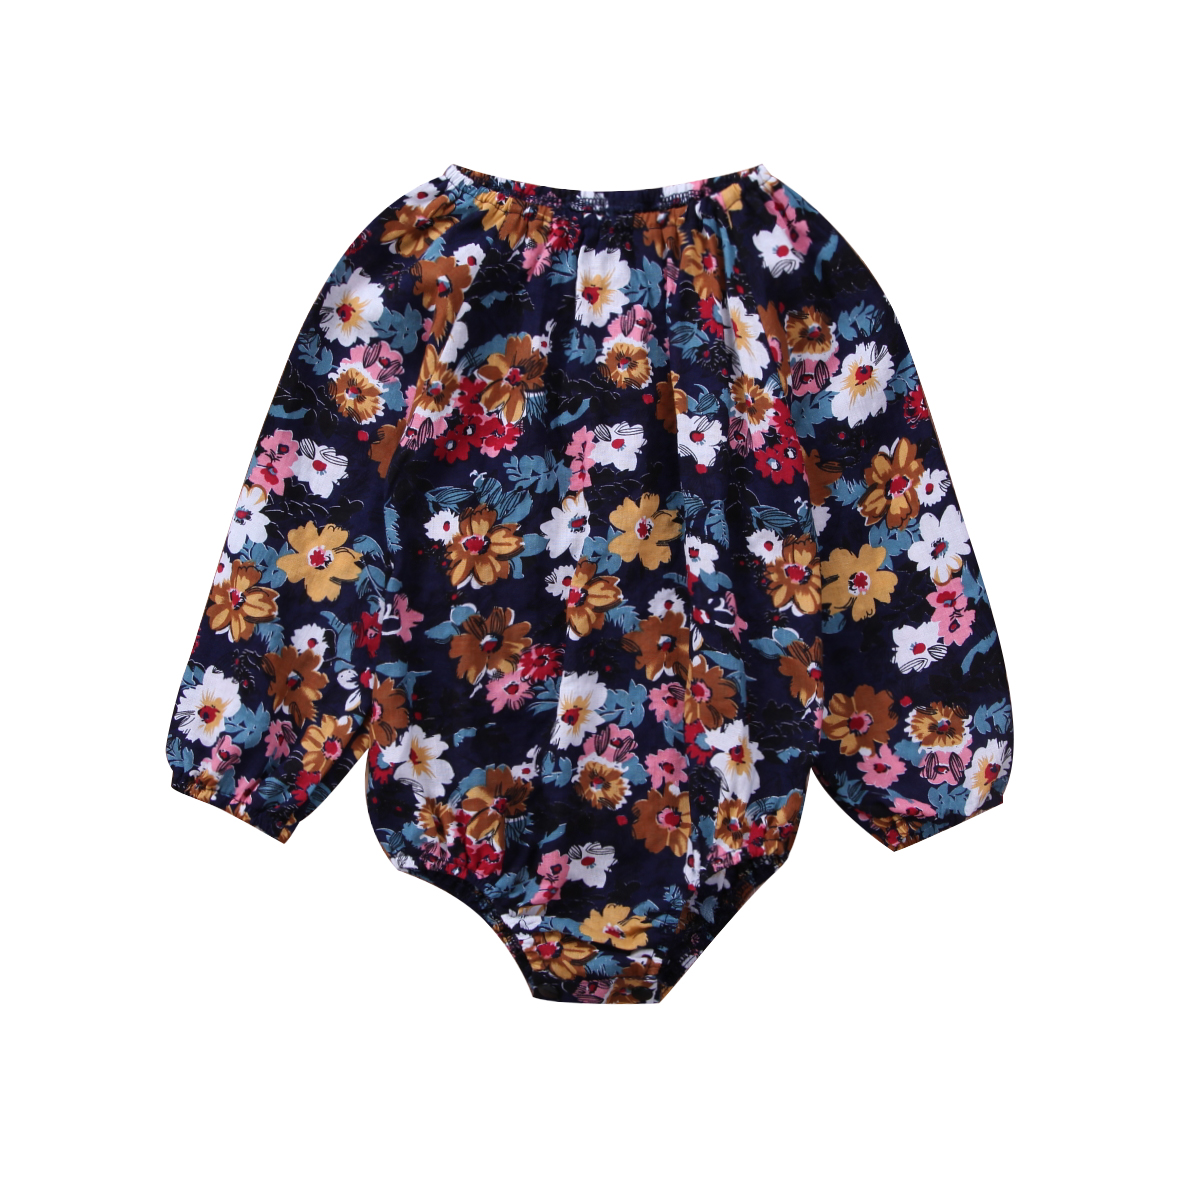 Pudcoco Cute Newborn Baby Girls Floral Clothes Infant girls Long Sleeve   Romper   Jumpsuit Vintage baby Girls Clothing Outfits